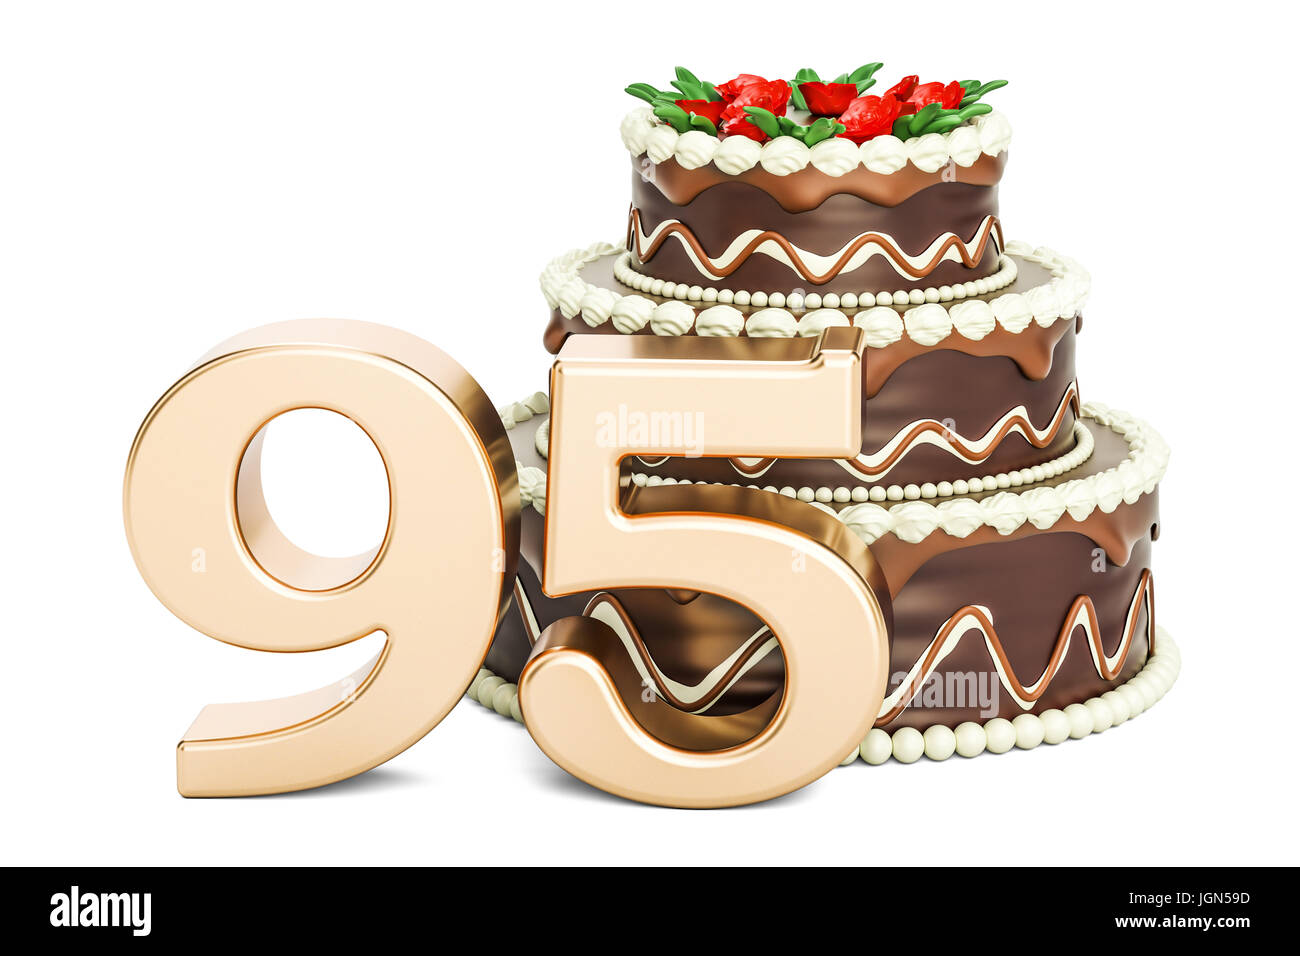 Chocolate Birthday Cake With Golden Number 95 3D Rendering Isolated On White Background